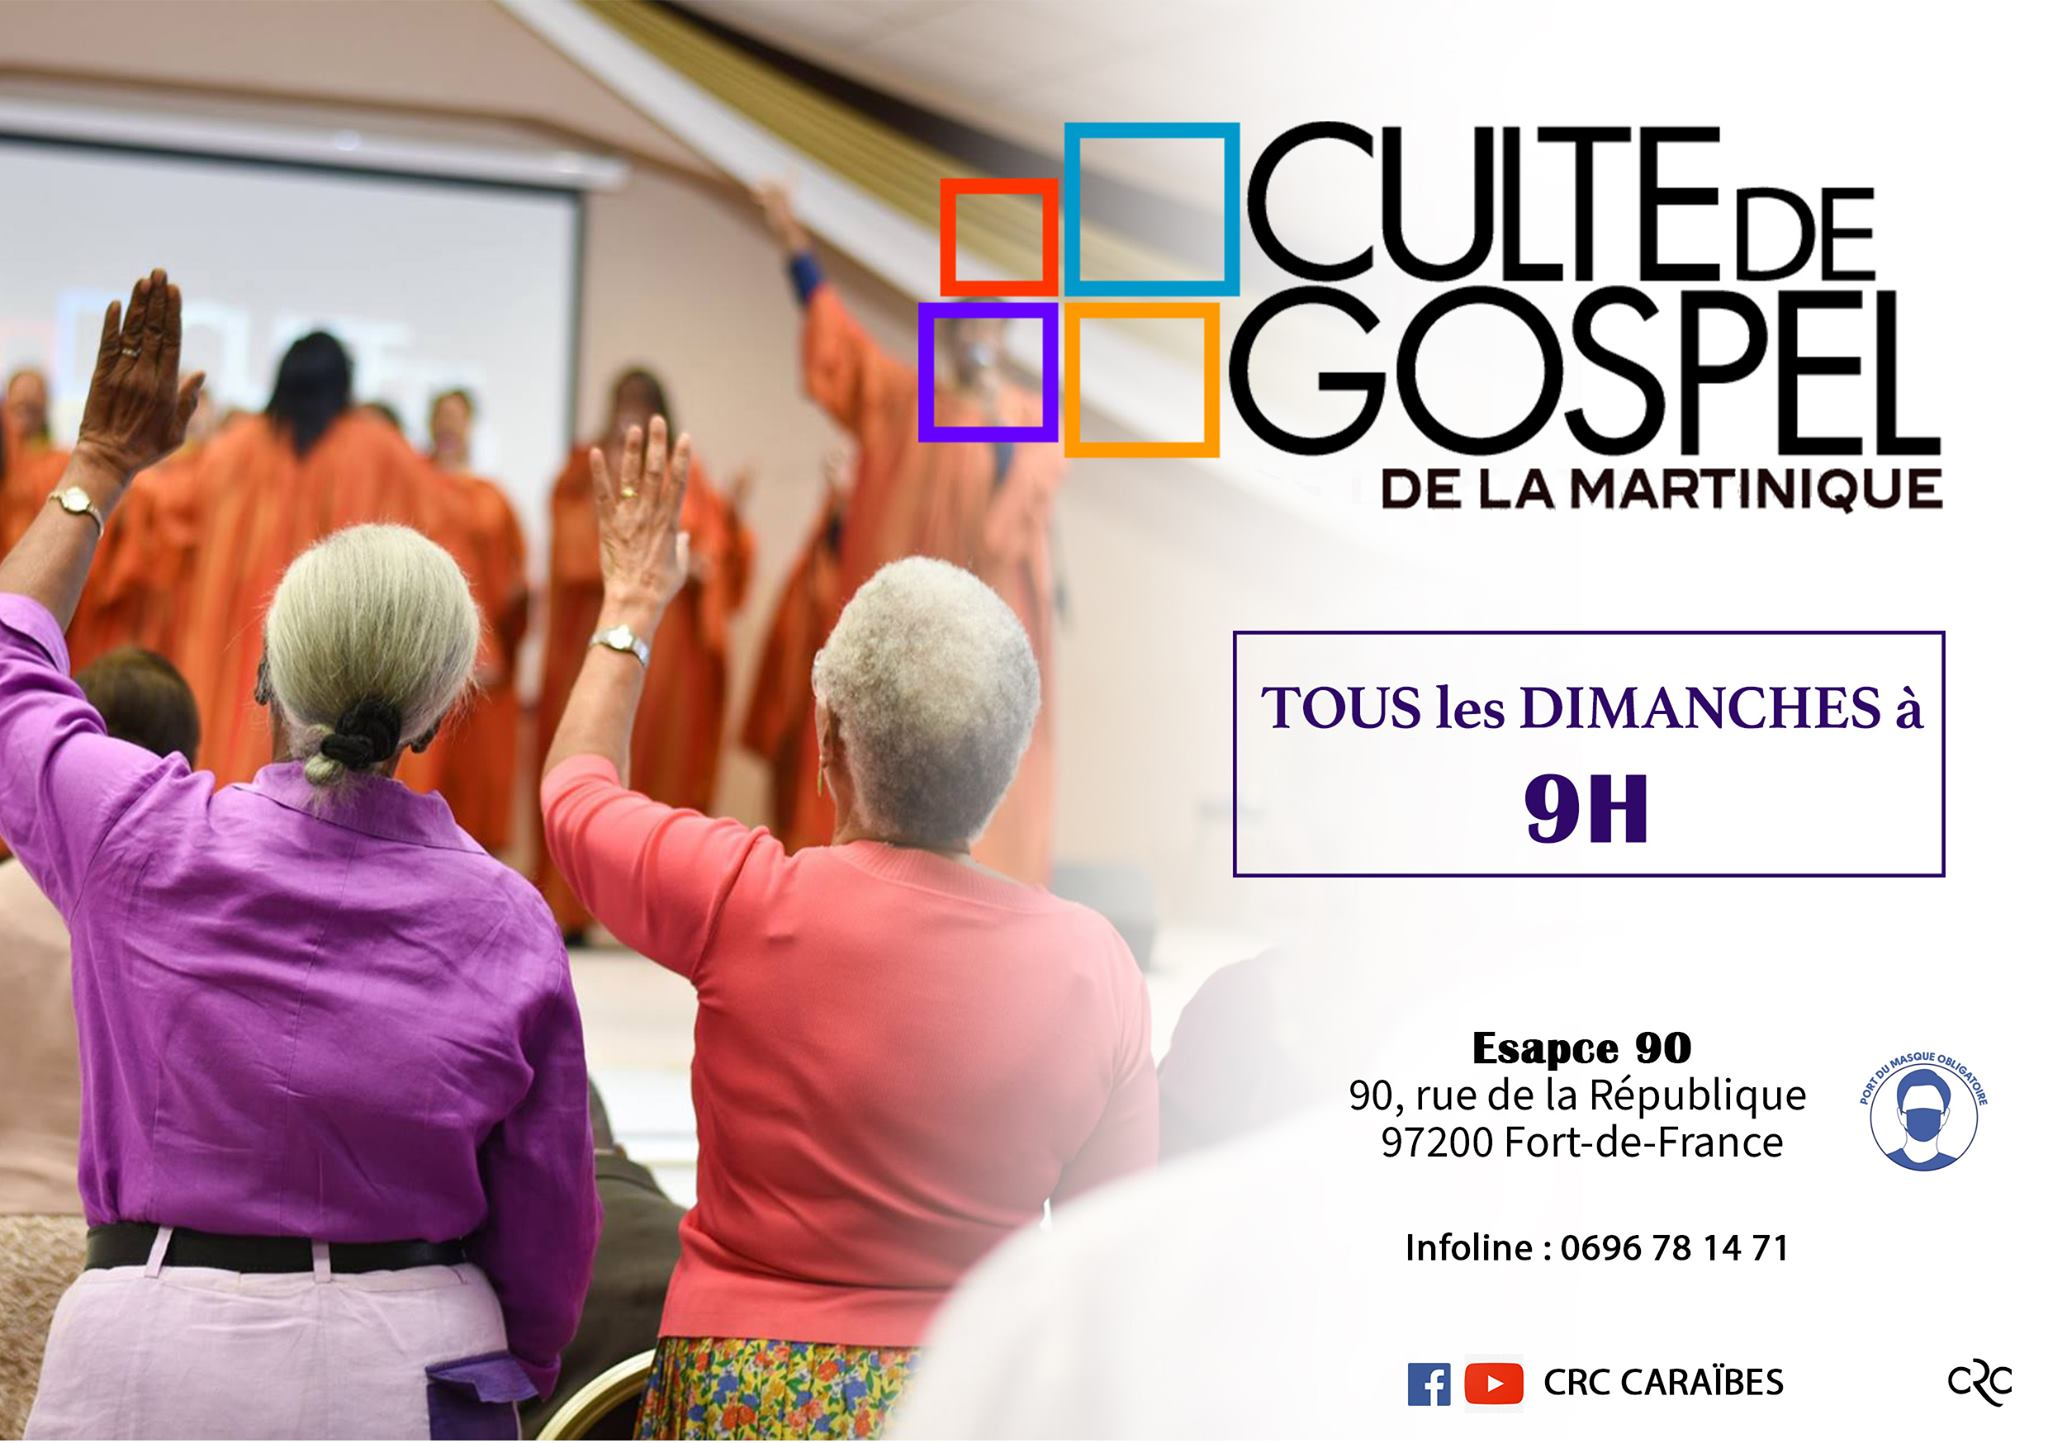 Culte de Gospel de la Martinique